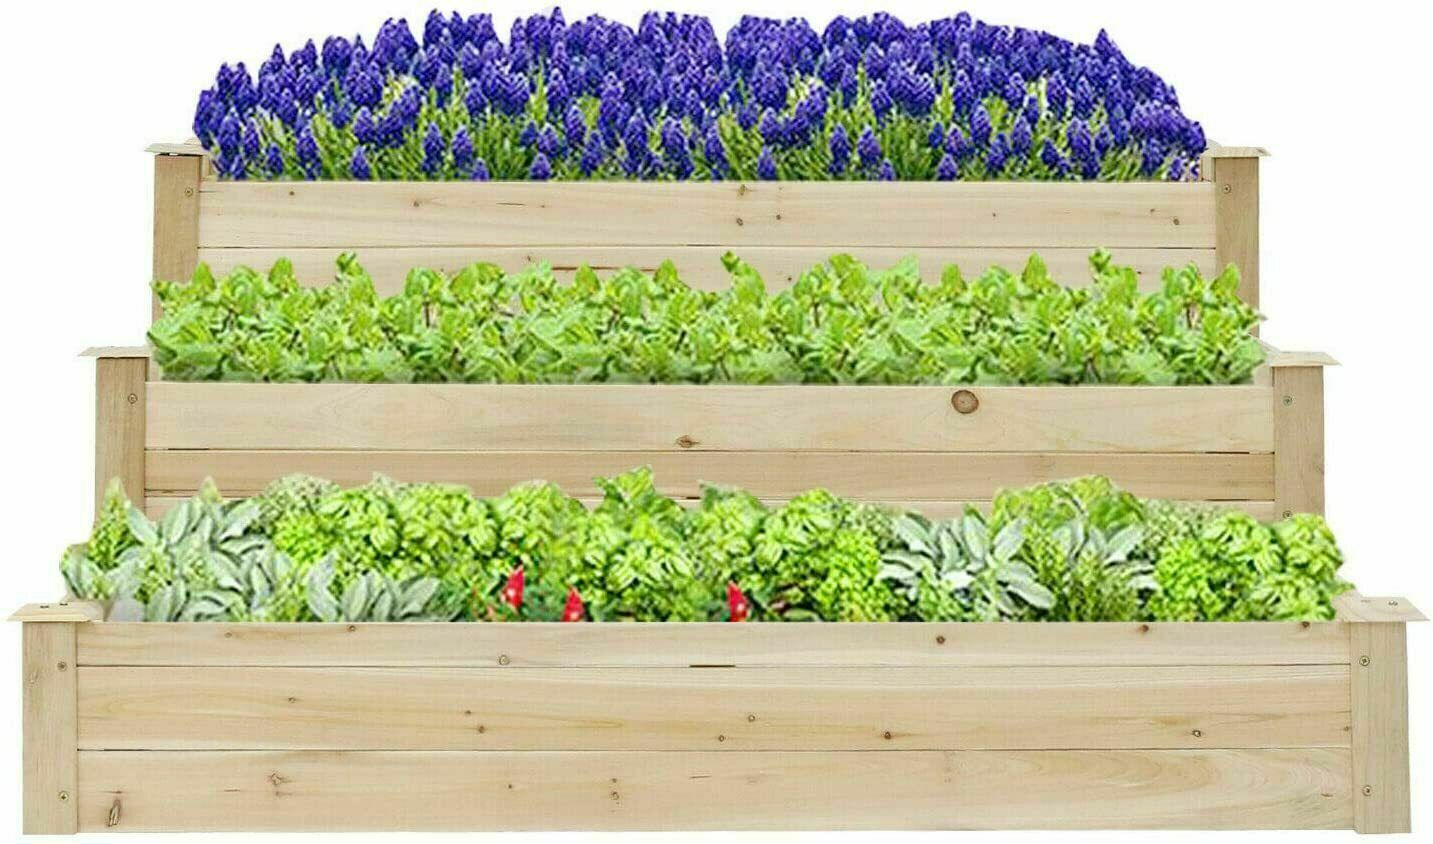 Kinbor Free Standing Plant Raised Bed with Trellis Elevated Flower Bed for Hanging Flower Baskets Patio Garden Yard